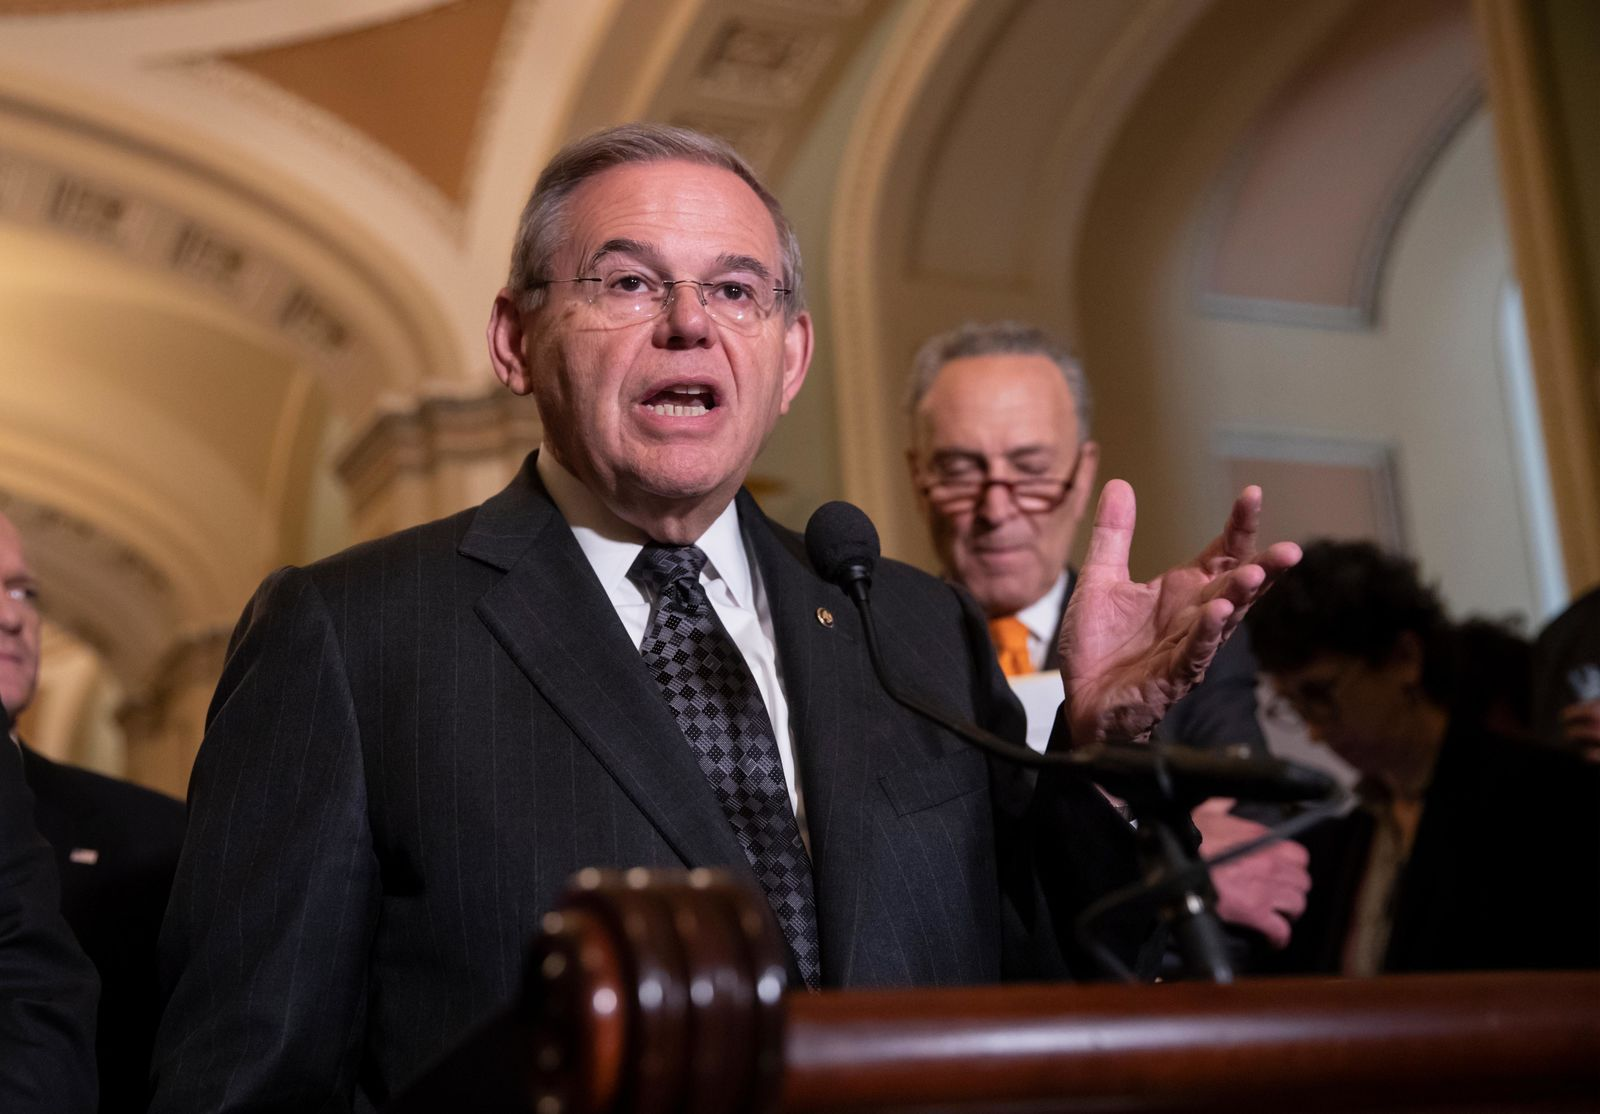 Sen. Bob Menendez, D-N.J., the ranking member of the Senate Foreign Relations Committee, joined at right by Senate Minority Leader Chuck Schumer, D-N.Y., talks to reporters on Capitol Hill in Washington, Tuesday, June 12, 2018. (AP Photo/J. Scott Applewhite)